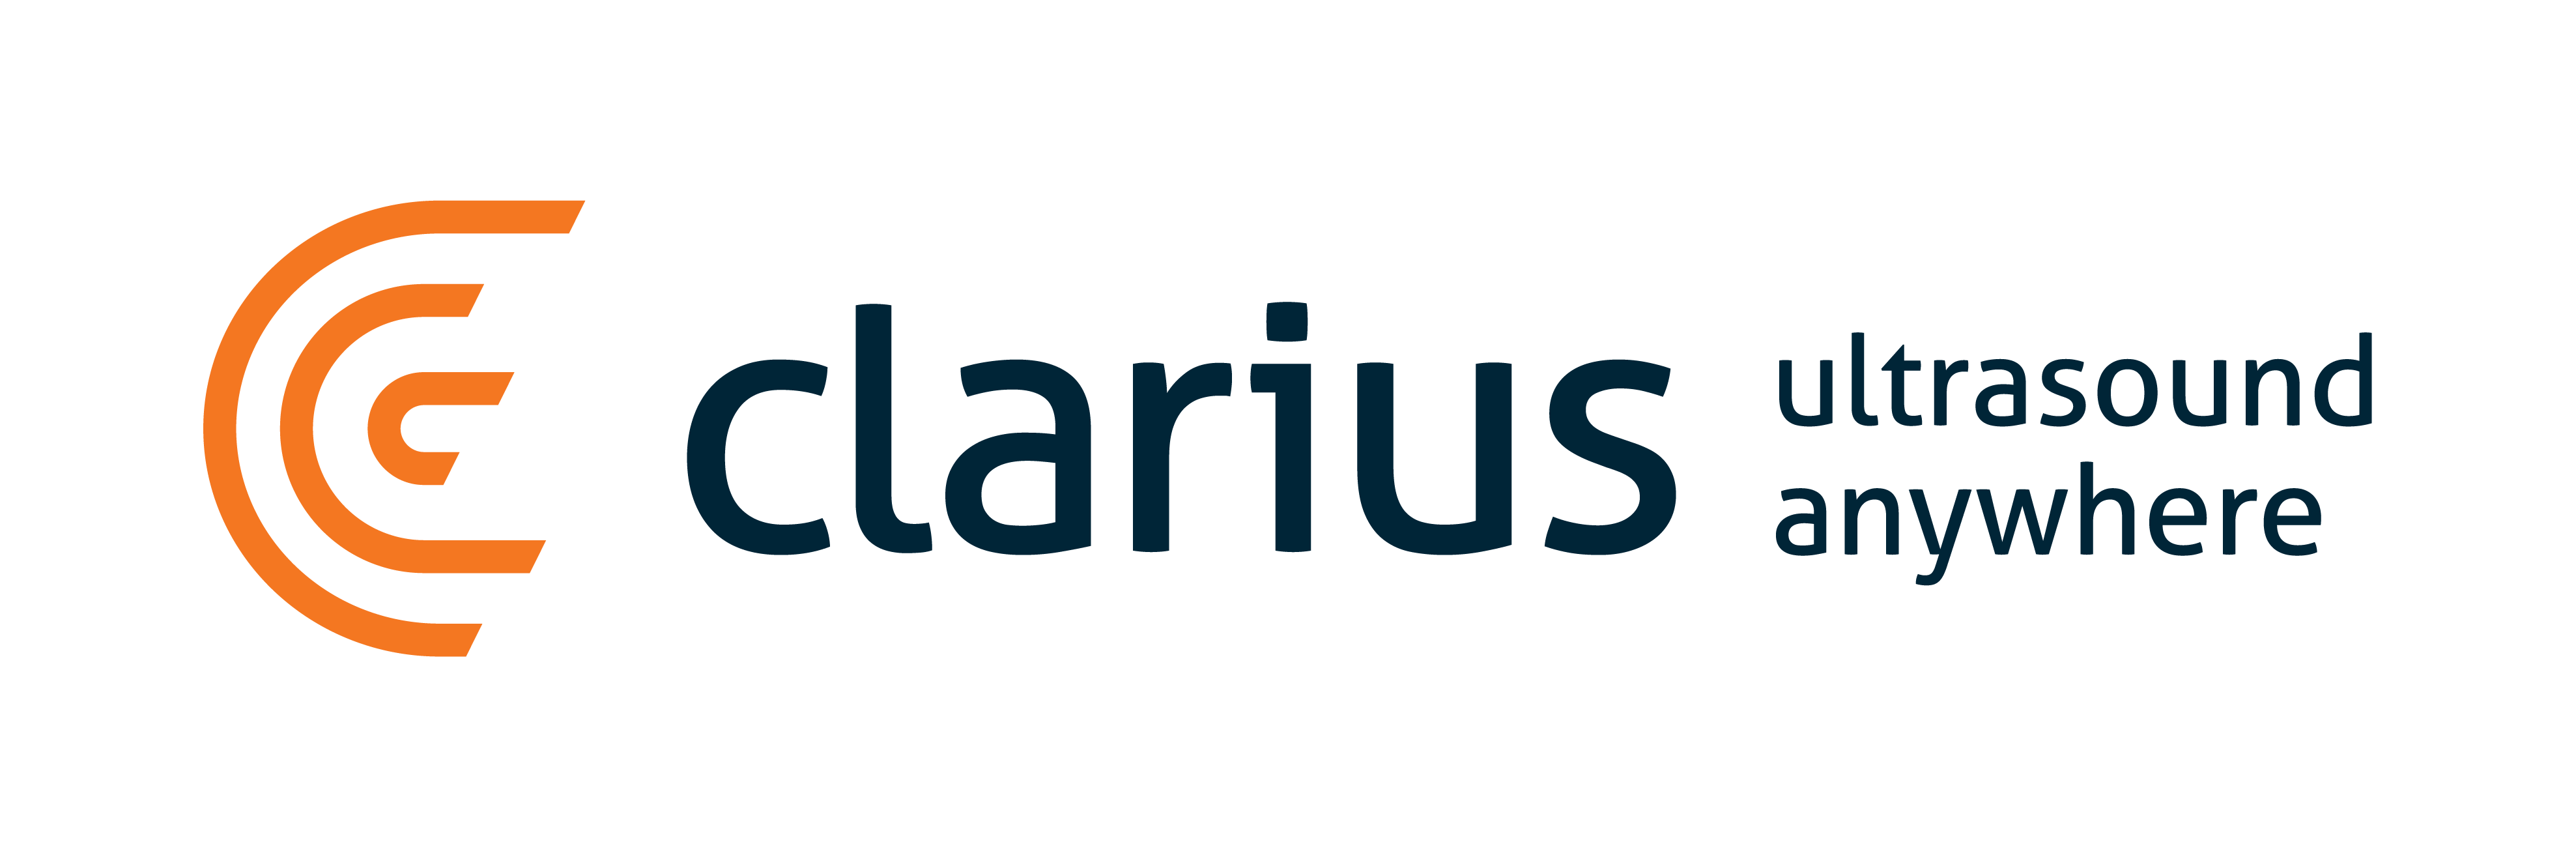 Clarius - Ultrasound anywhere